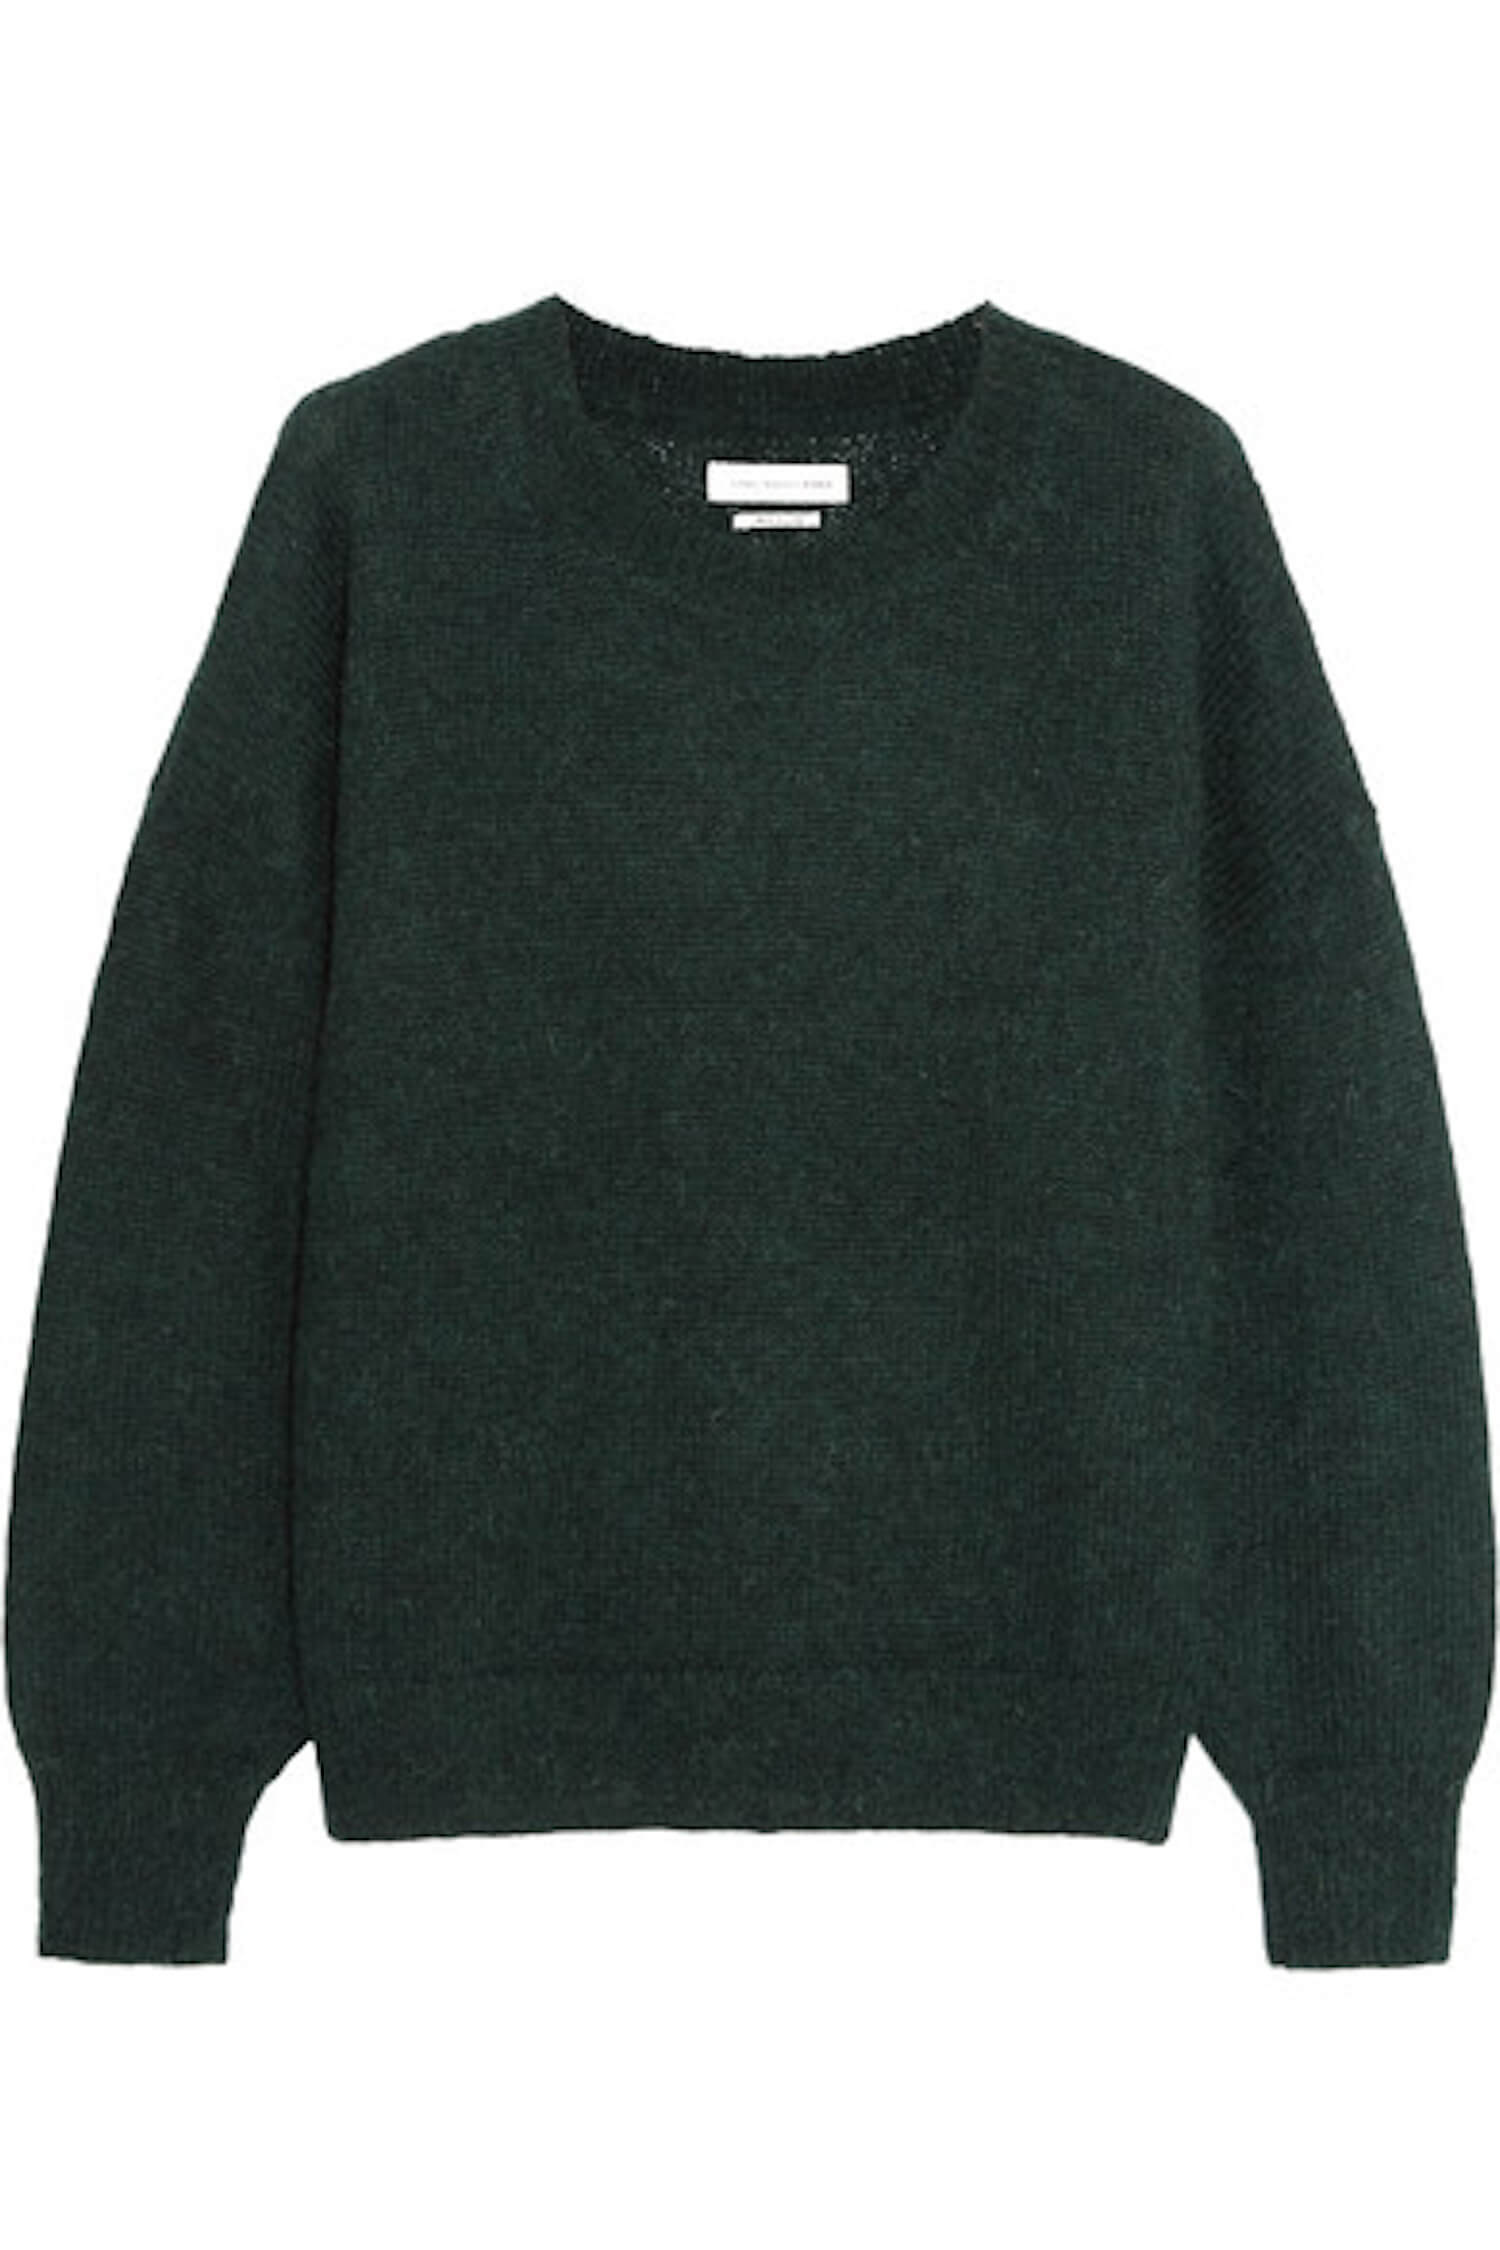 est living the est edit isabel marant sweater